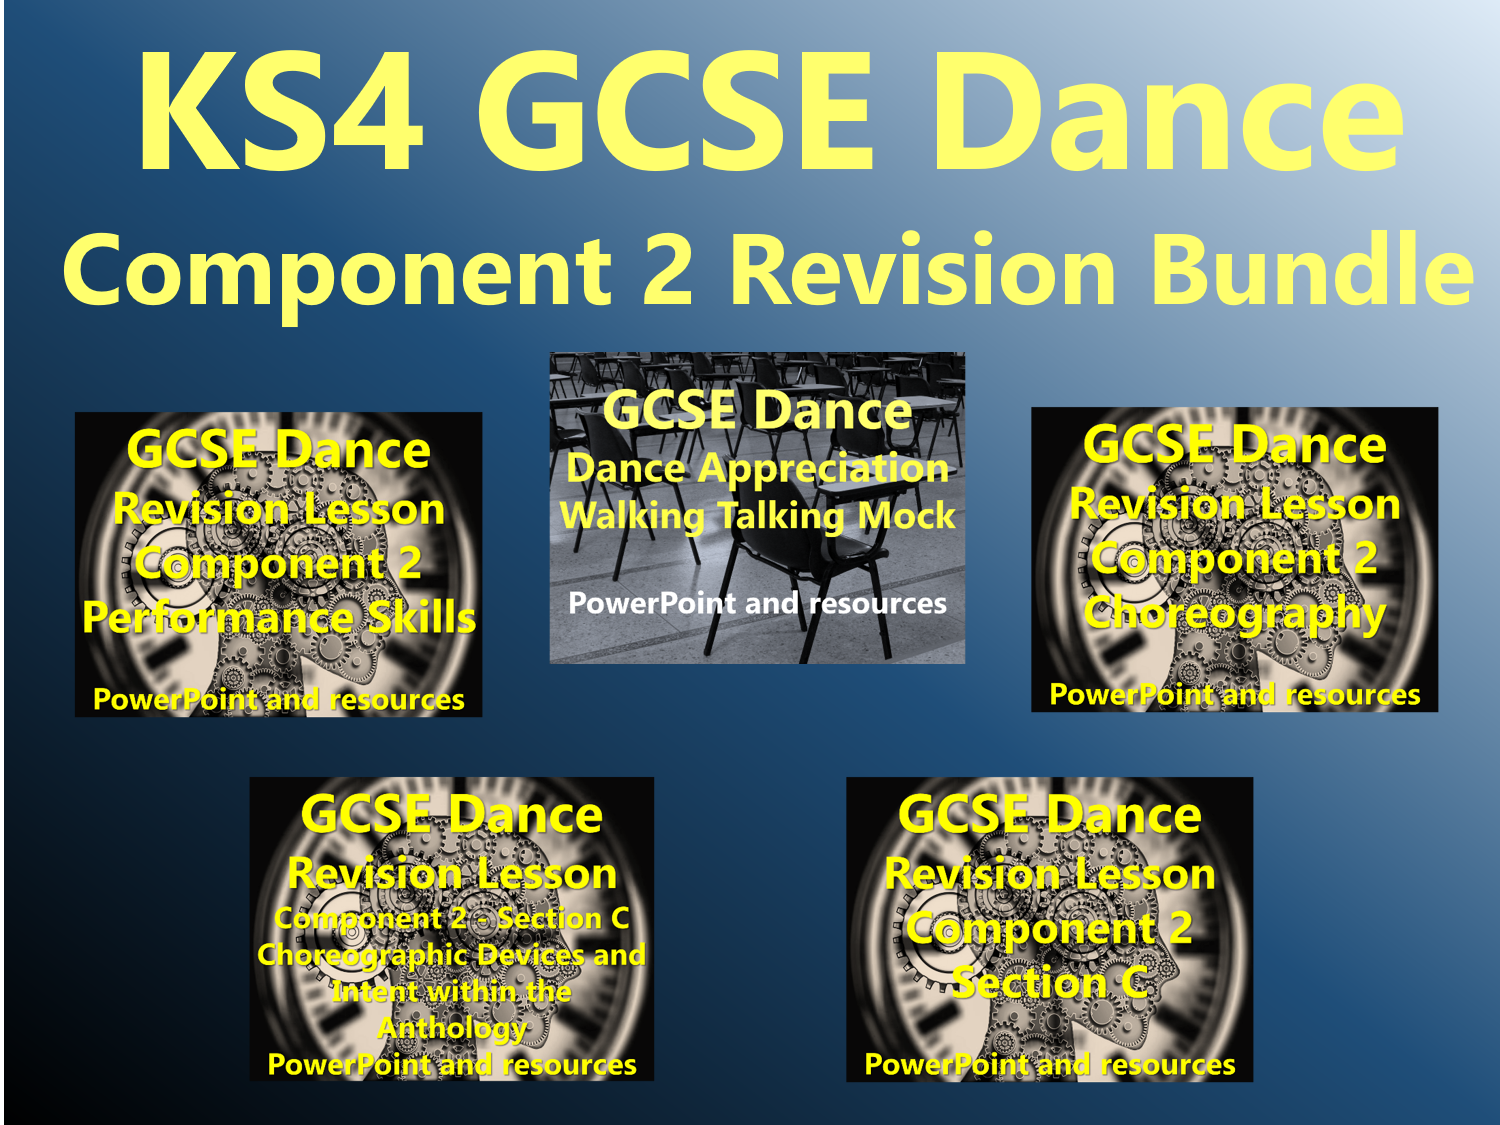 KS4 GCSE Dance Component 2 Revision Bundle